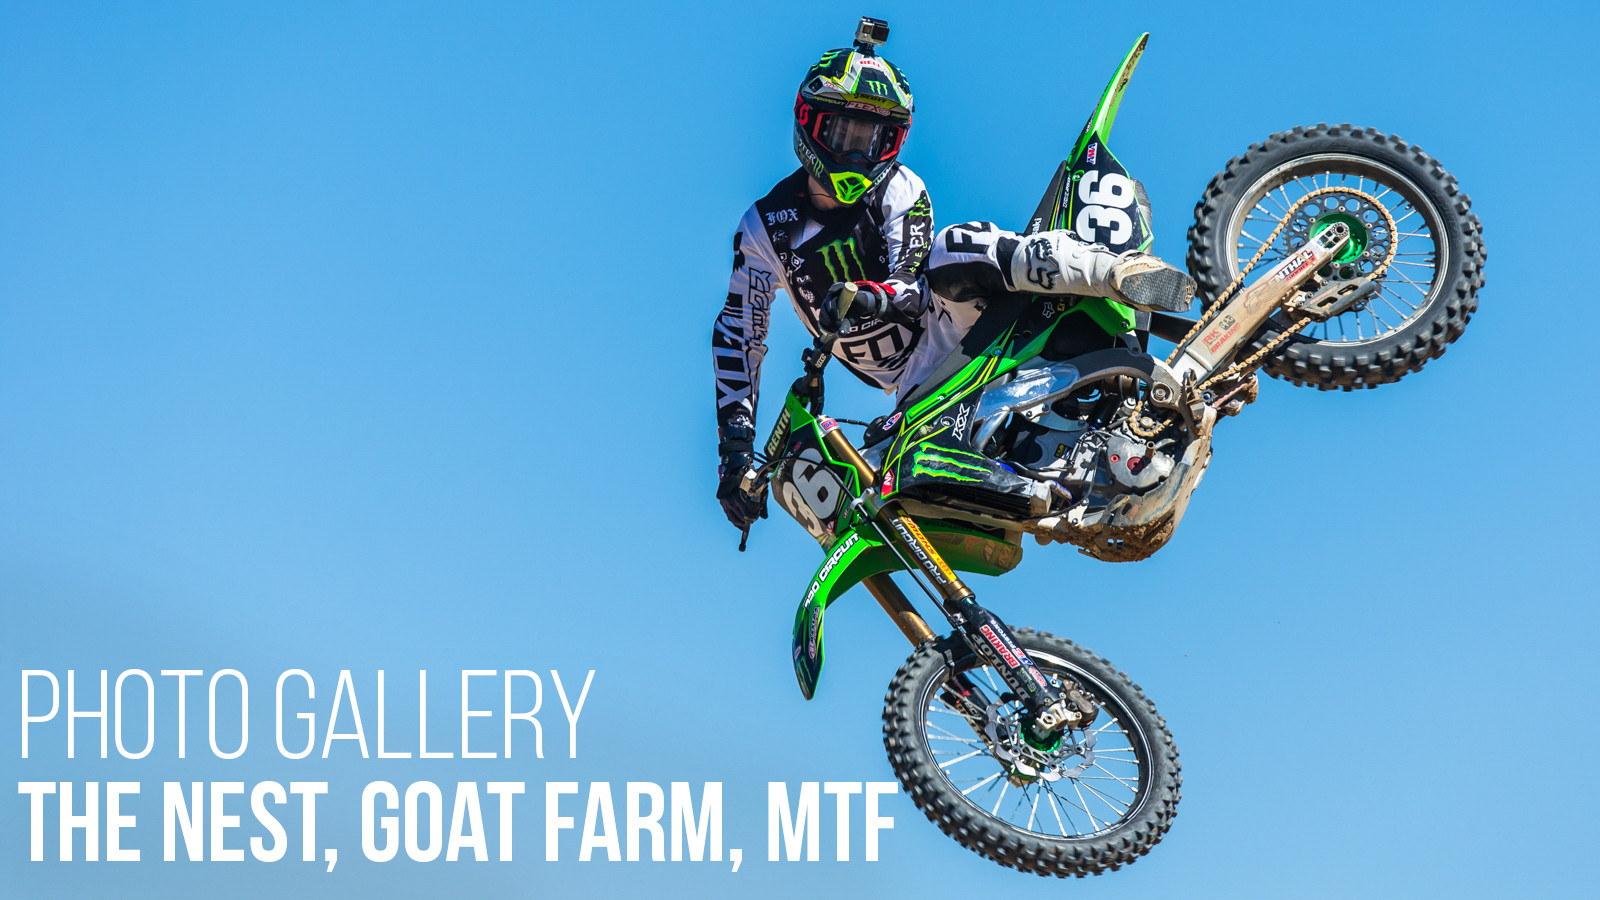 Photo Gallery: The Nest, Goat Farm, and MTF - Adam Cianciarulo - Photo Gallery: The Nest, Goat Farm, and MTF - Motocross Pictures - Vital MX